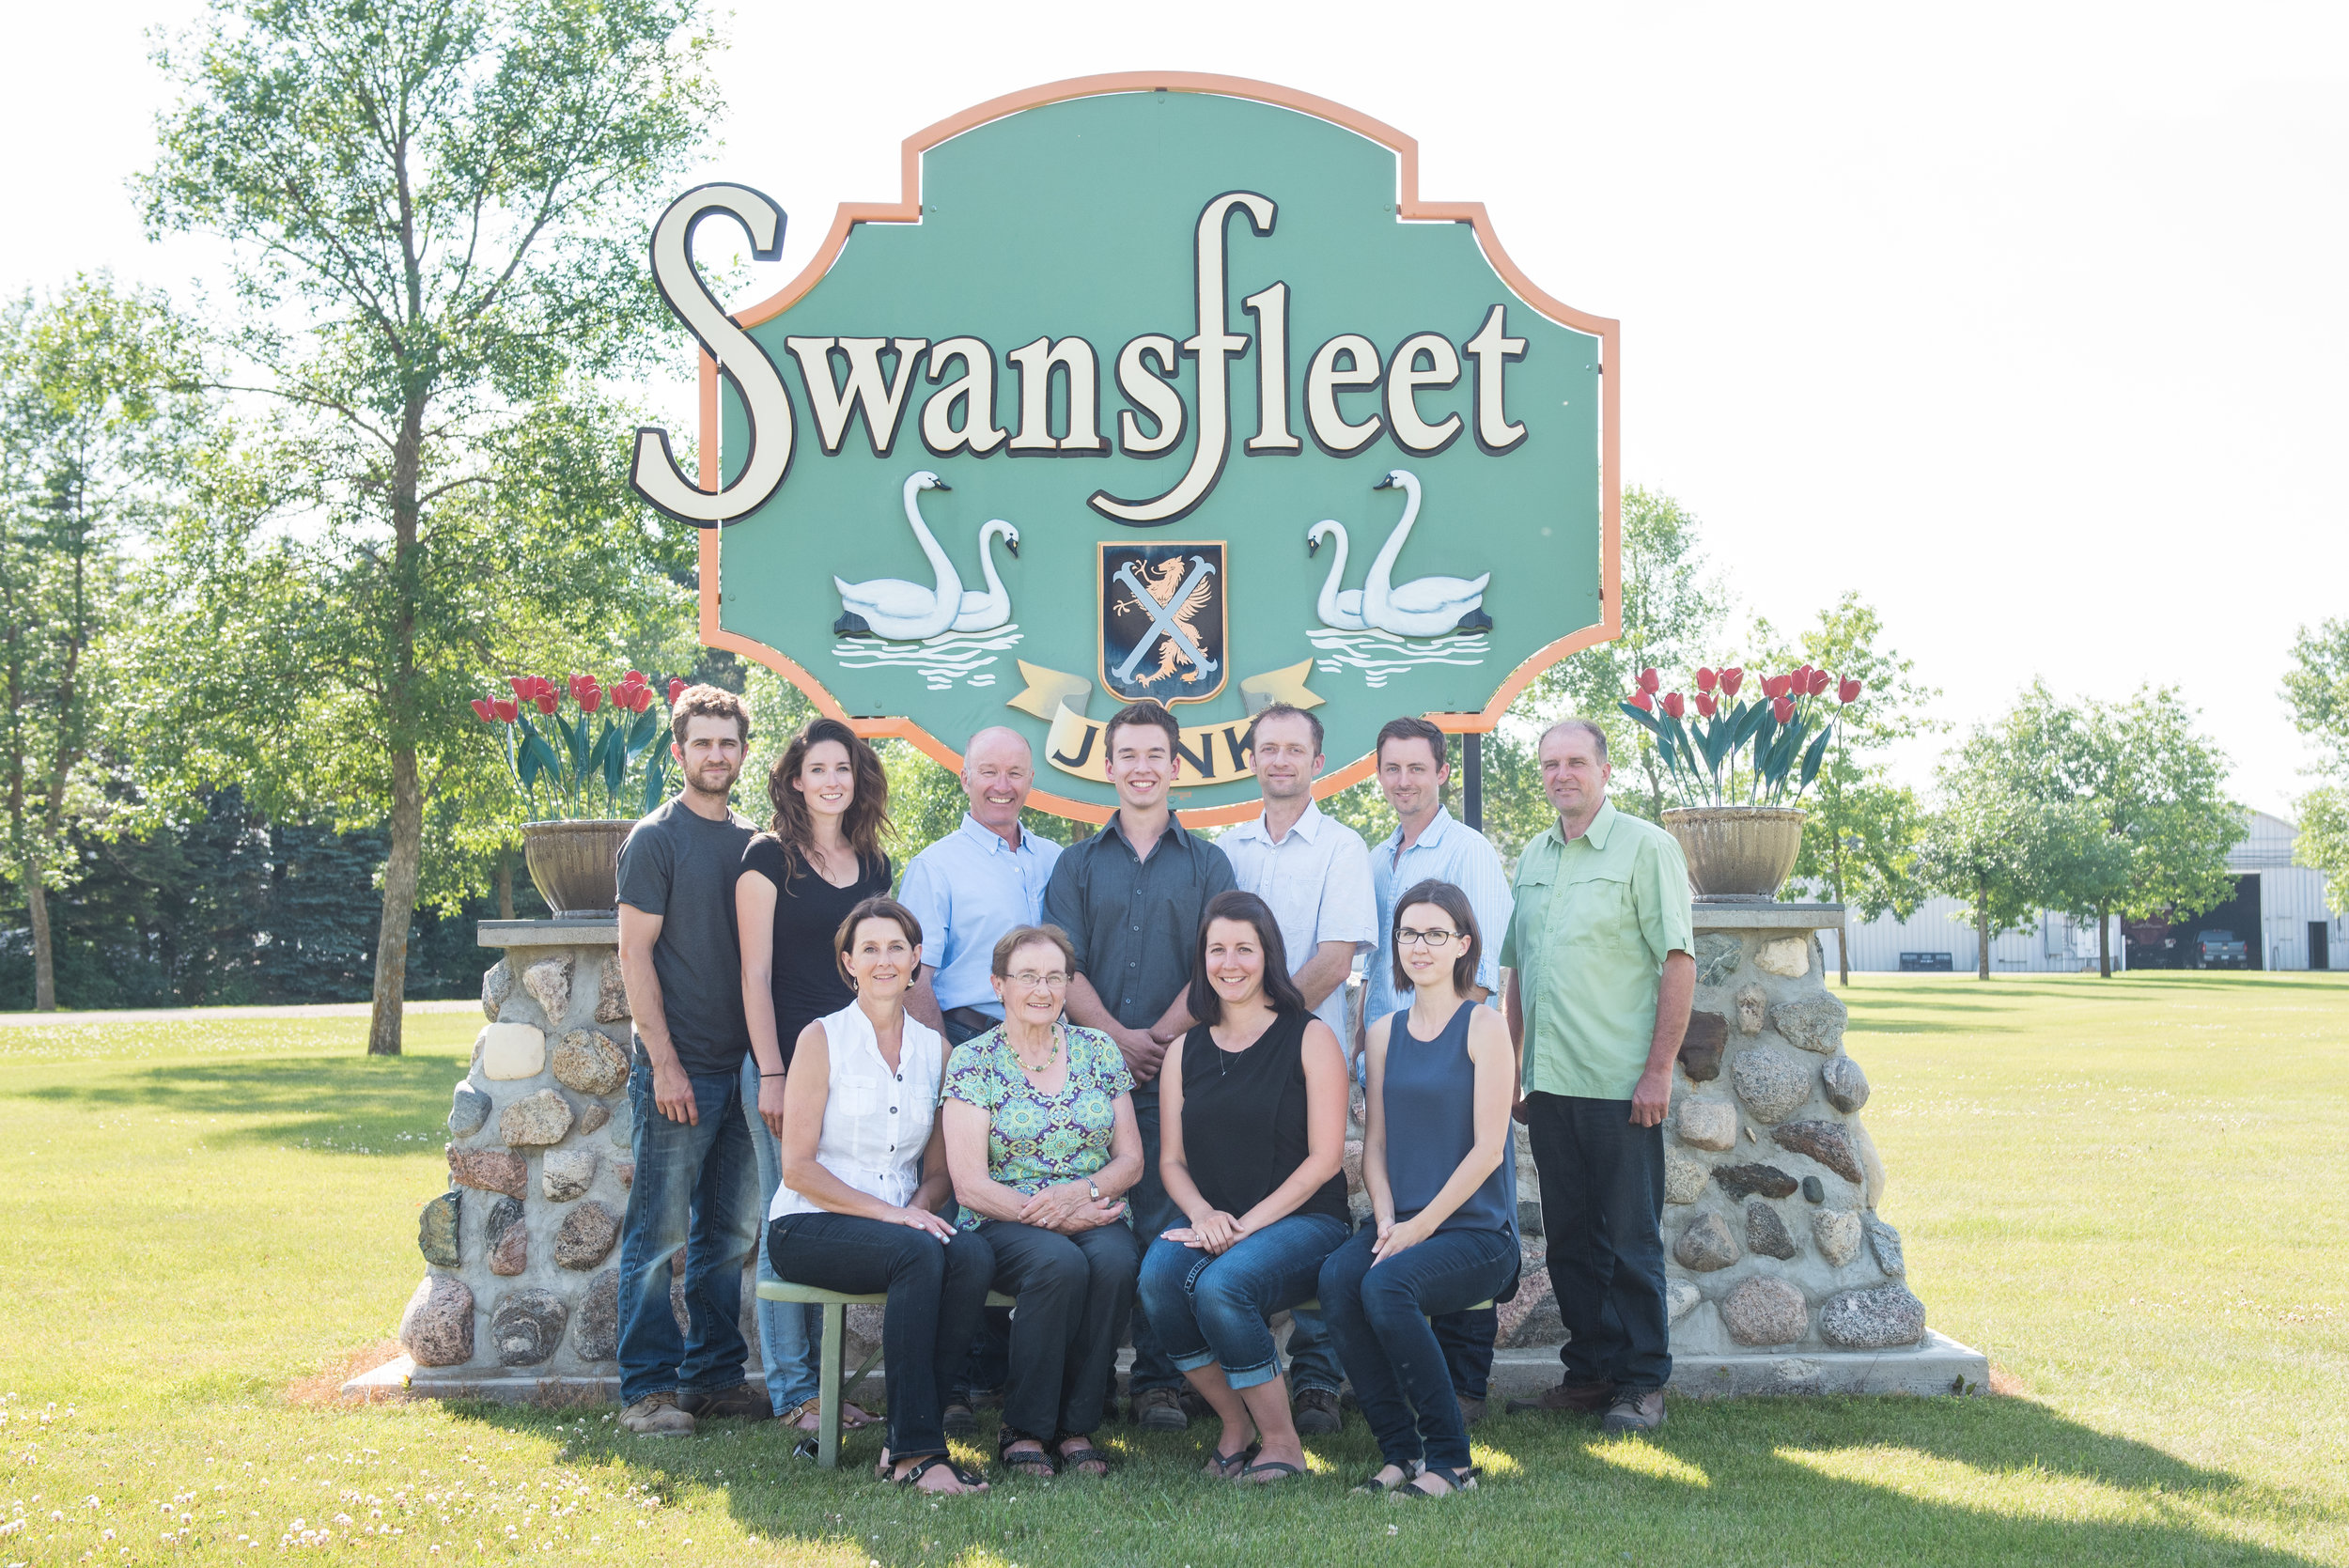 our story - Swansfleet started growing seed potatoes near Swan Lake, MB in 1976. The farm has grown but still remains a family operation.Brothers Tim, Vince and Steve Jonk farm alongside the next generation, Russell Jonk and Andrew and Samantha Devloo. Swansfleet Alliance is dedicated to providing our customers with top quality potatoes, grain and oilseeds.